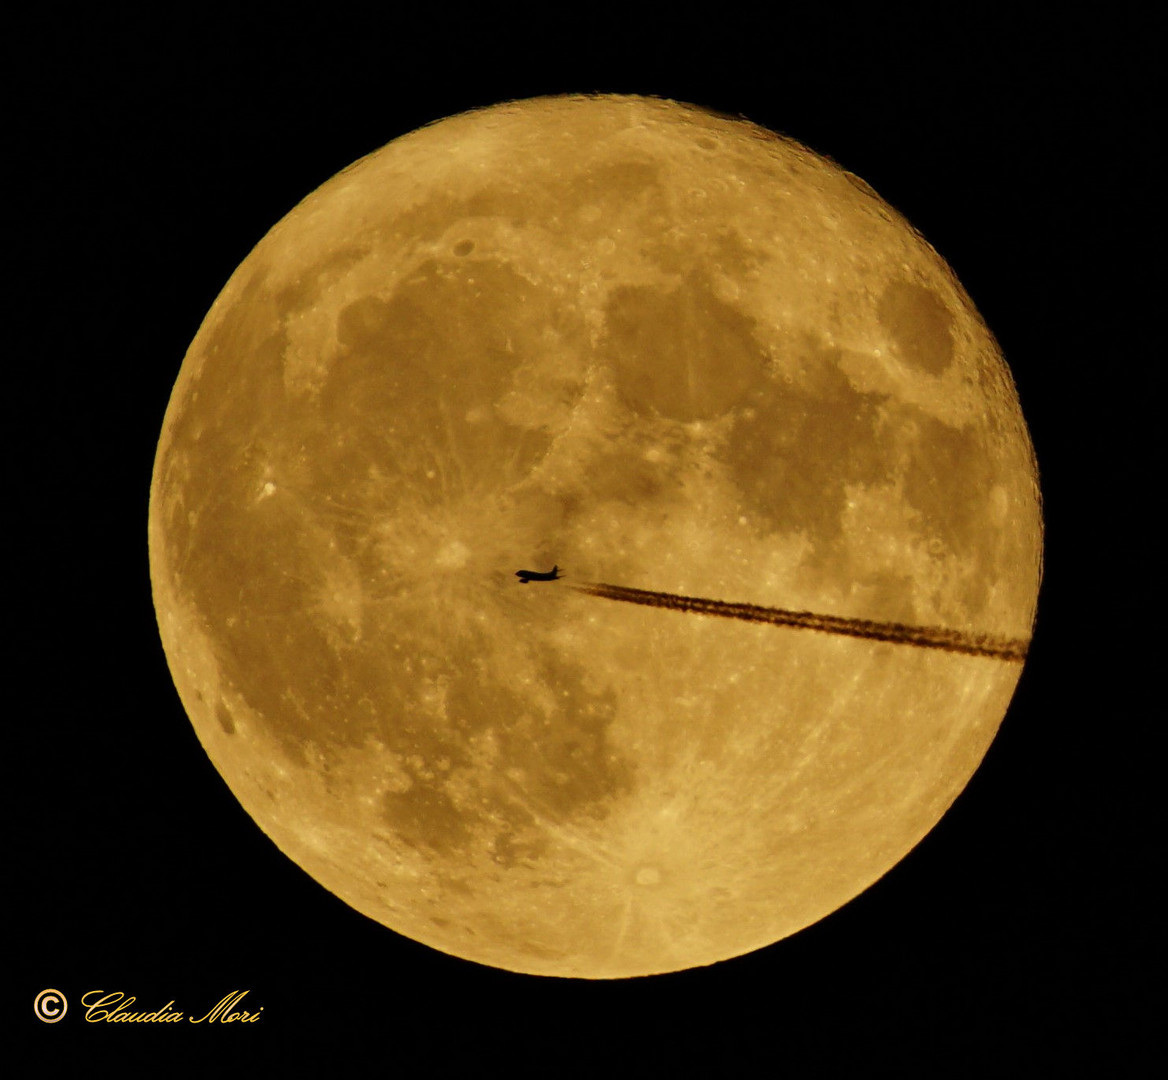 The plane and the full moon